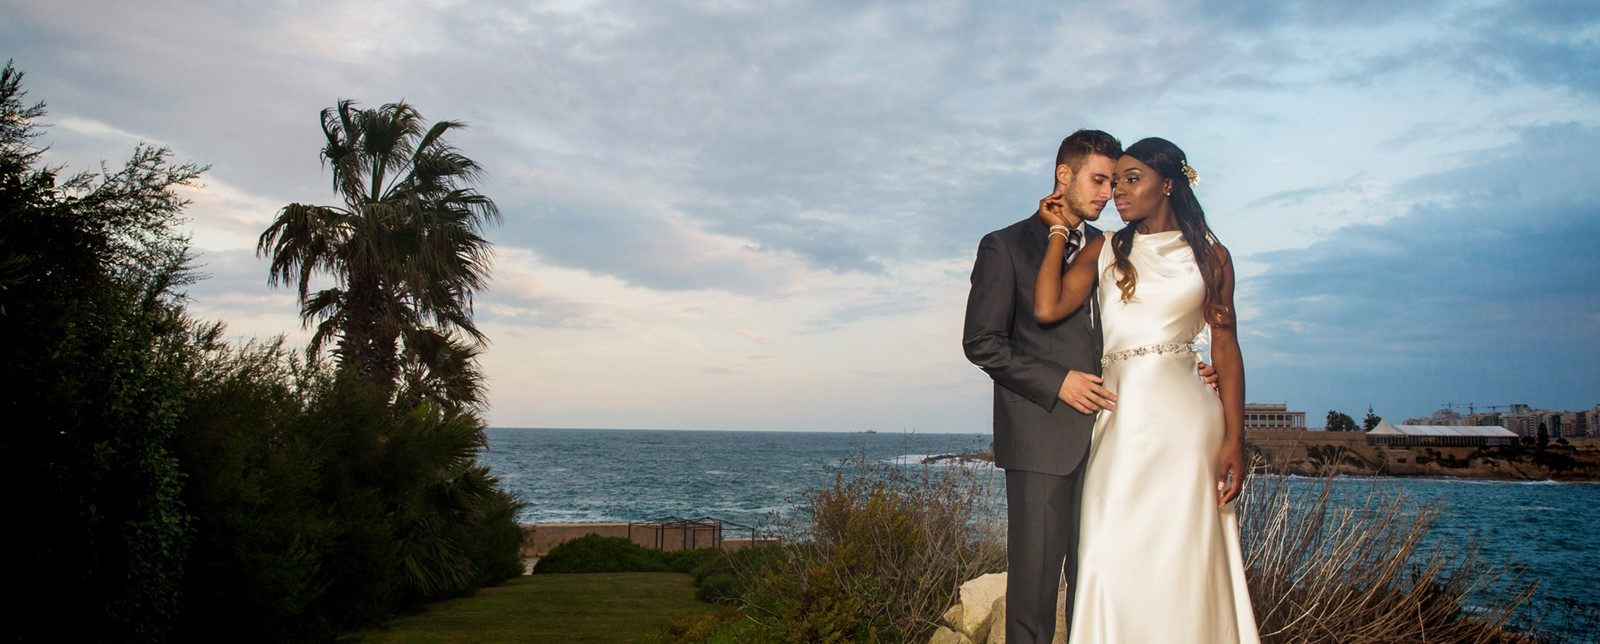 Corinthia St George's wedding couple sea views